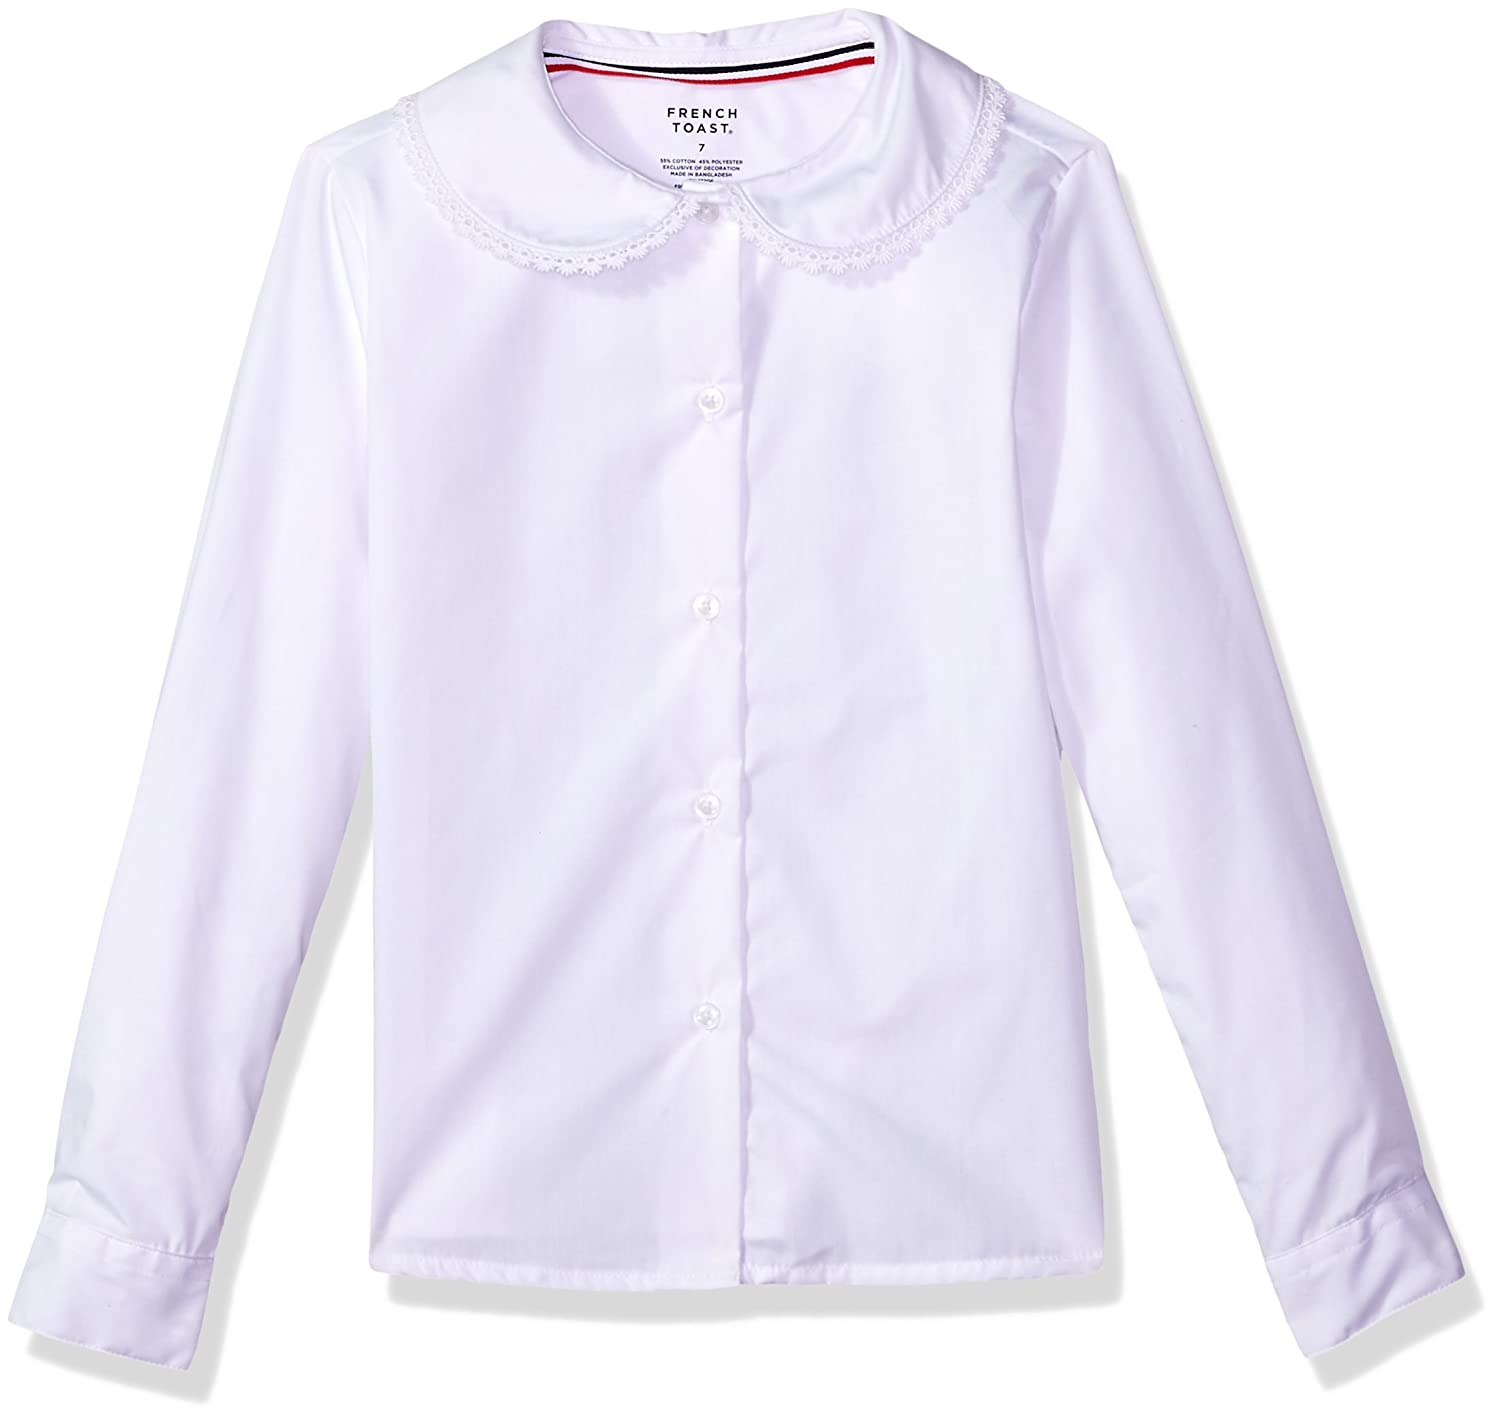 French Toast Girls Long Sleeve Peter Pan Blouse with Lace Trim Collar - E9323